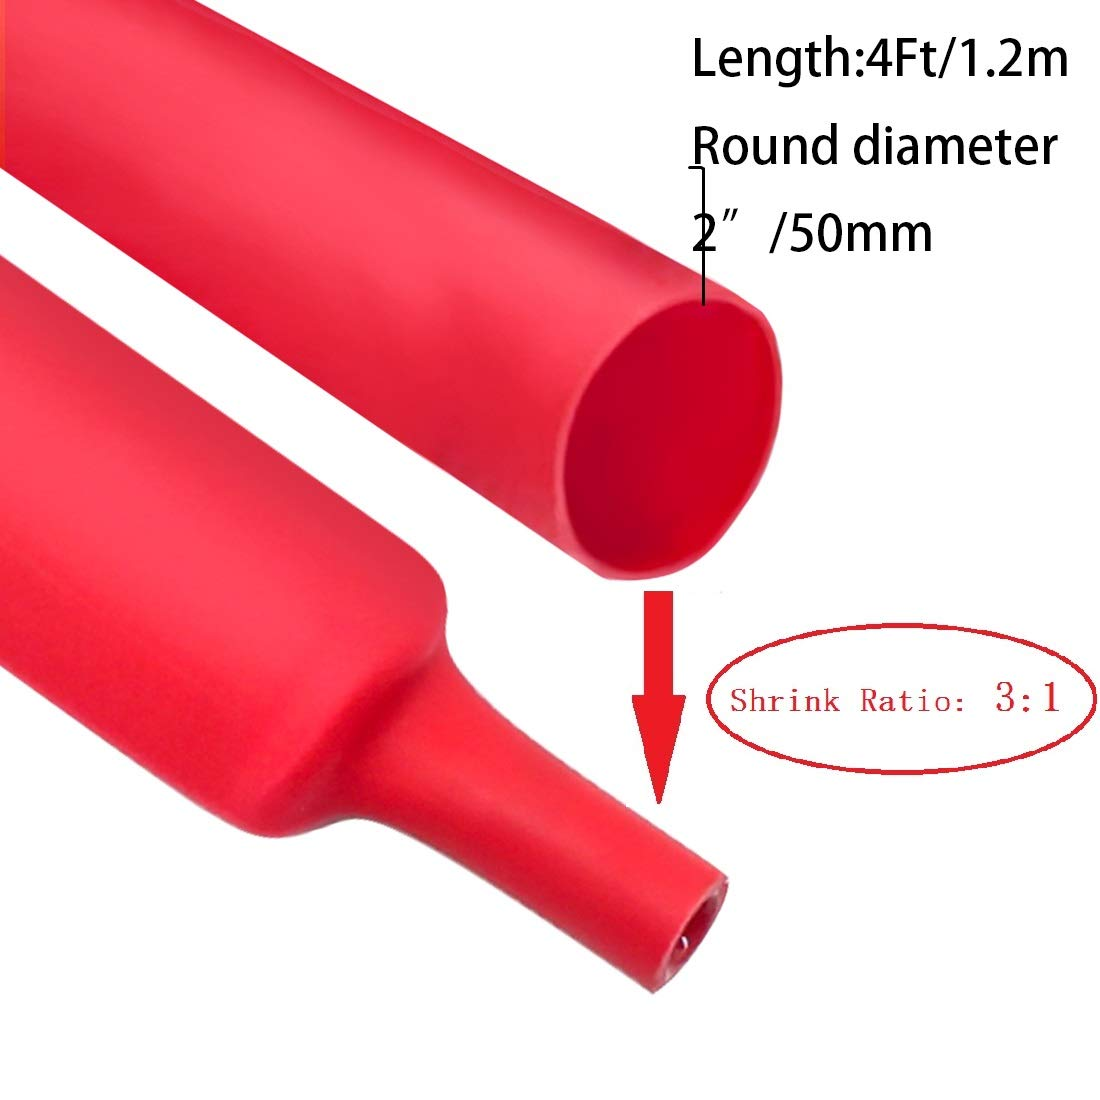 Dual Wall Heat Shrink Tubing 3:1 Ratio Heat Activated Adhesive Glue Lined Marine Shrink Tube Wire Sleeving Wrap Protector Black 5Ft Dia 0.31 7.9mm